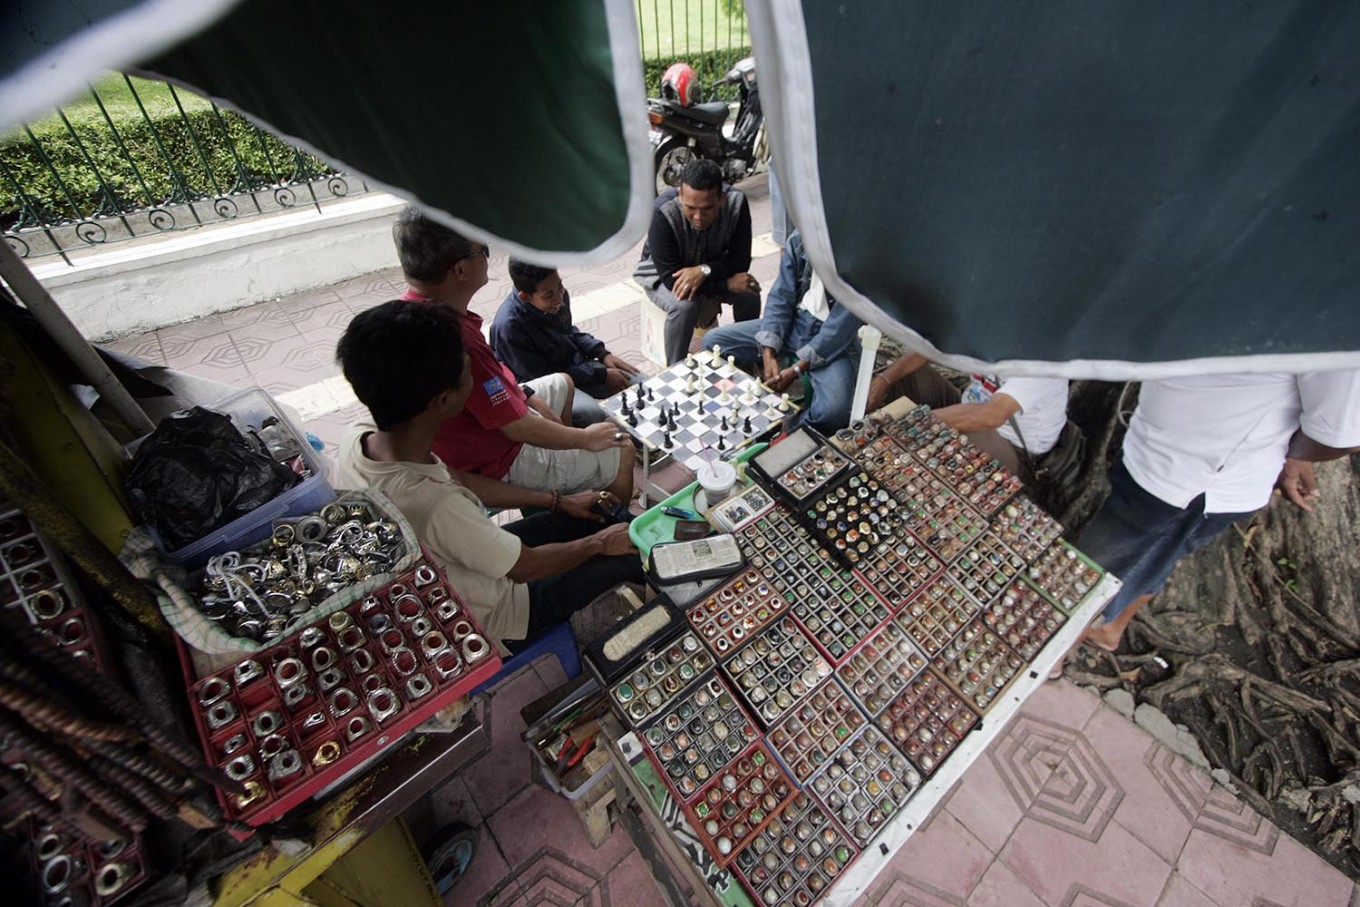 Traders play chess to pass the time while waiting for customers. JP/Boy T. Harjanto